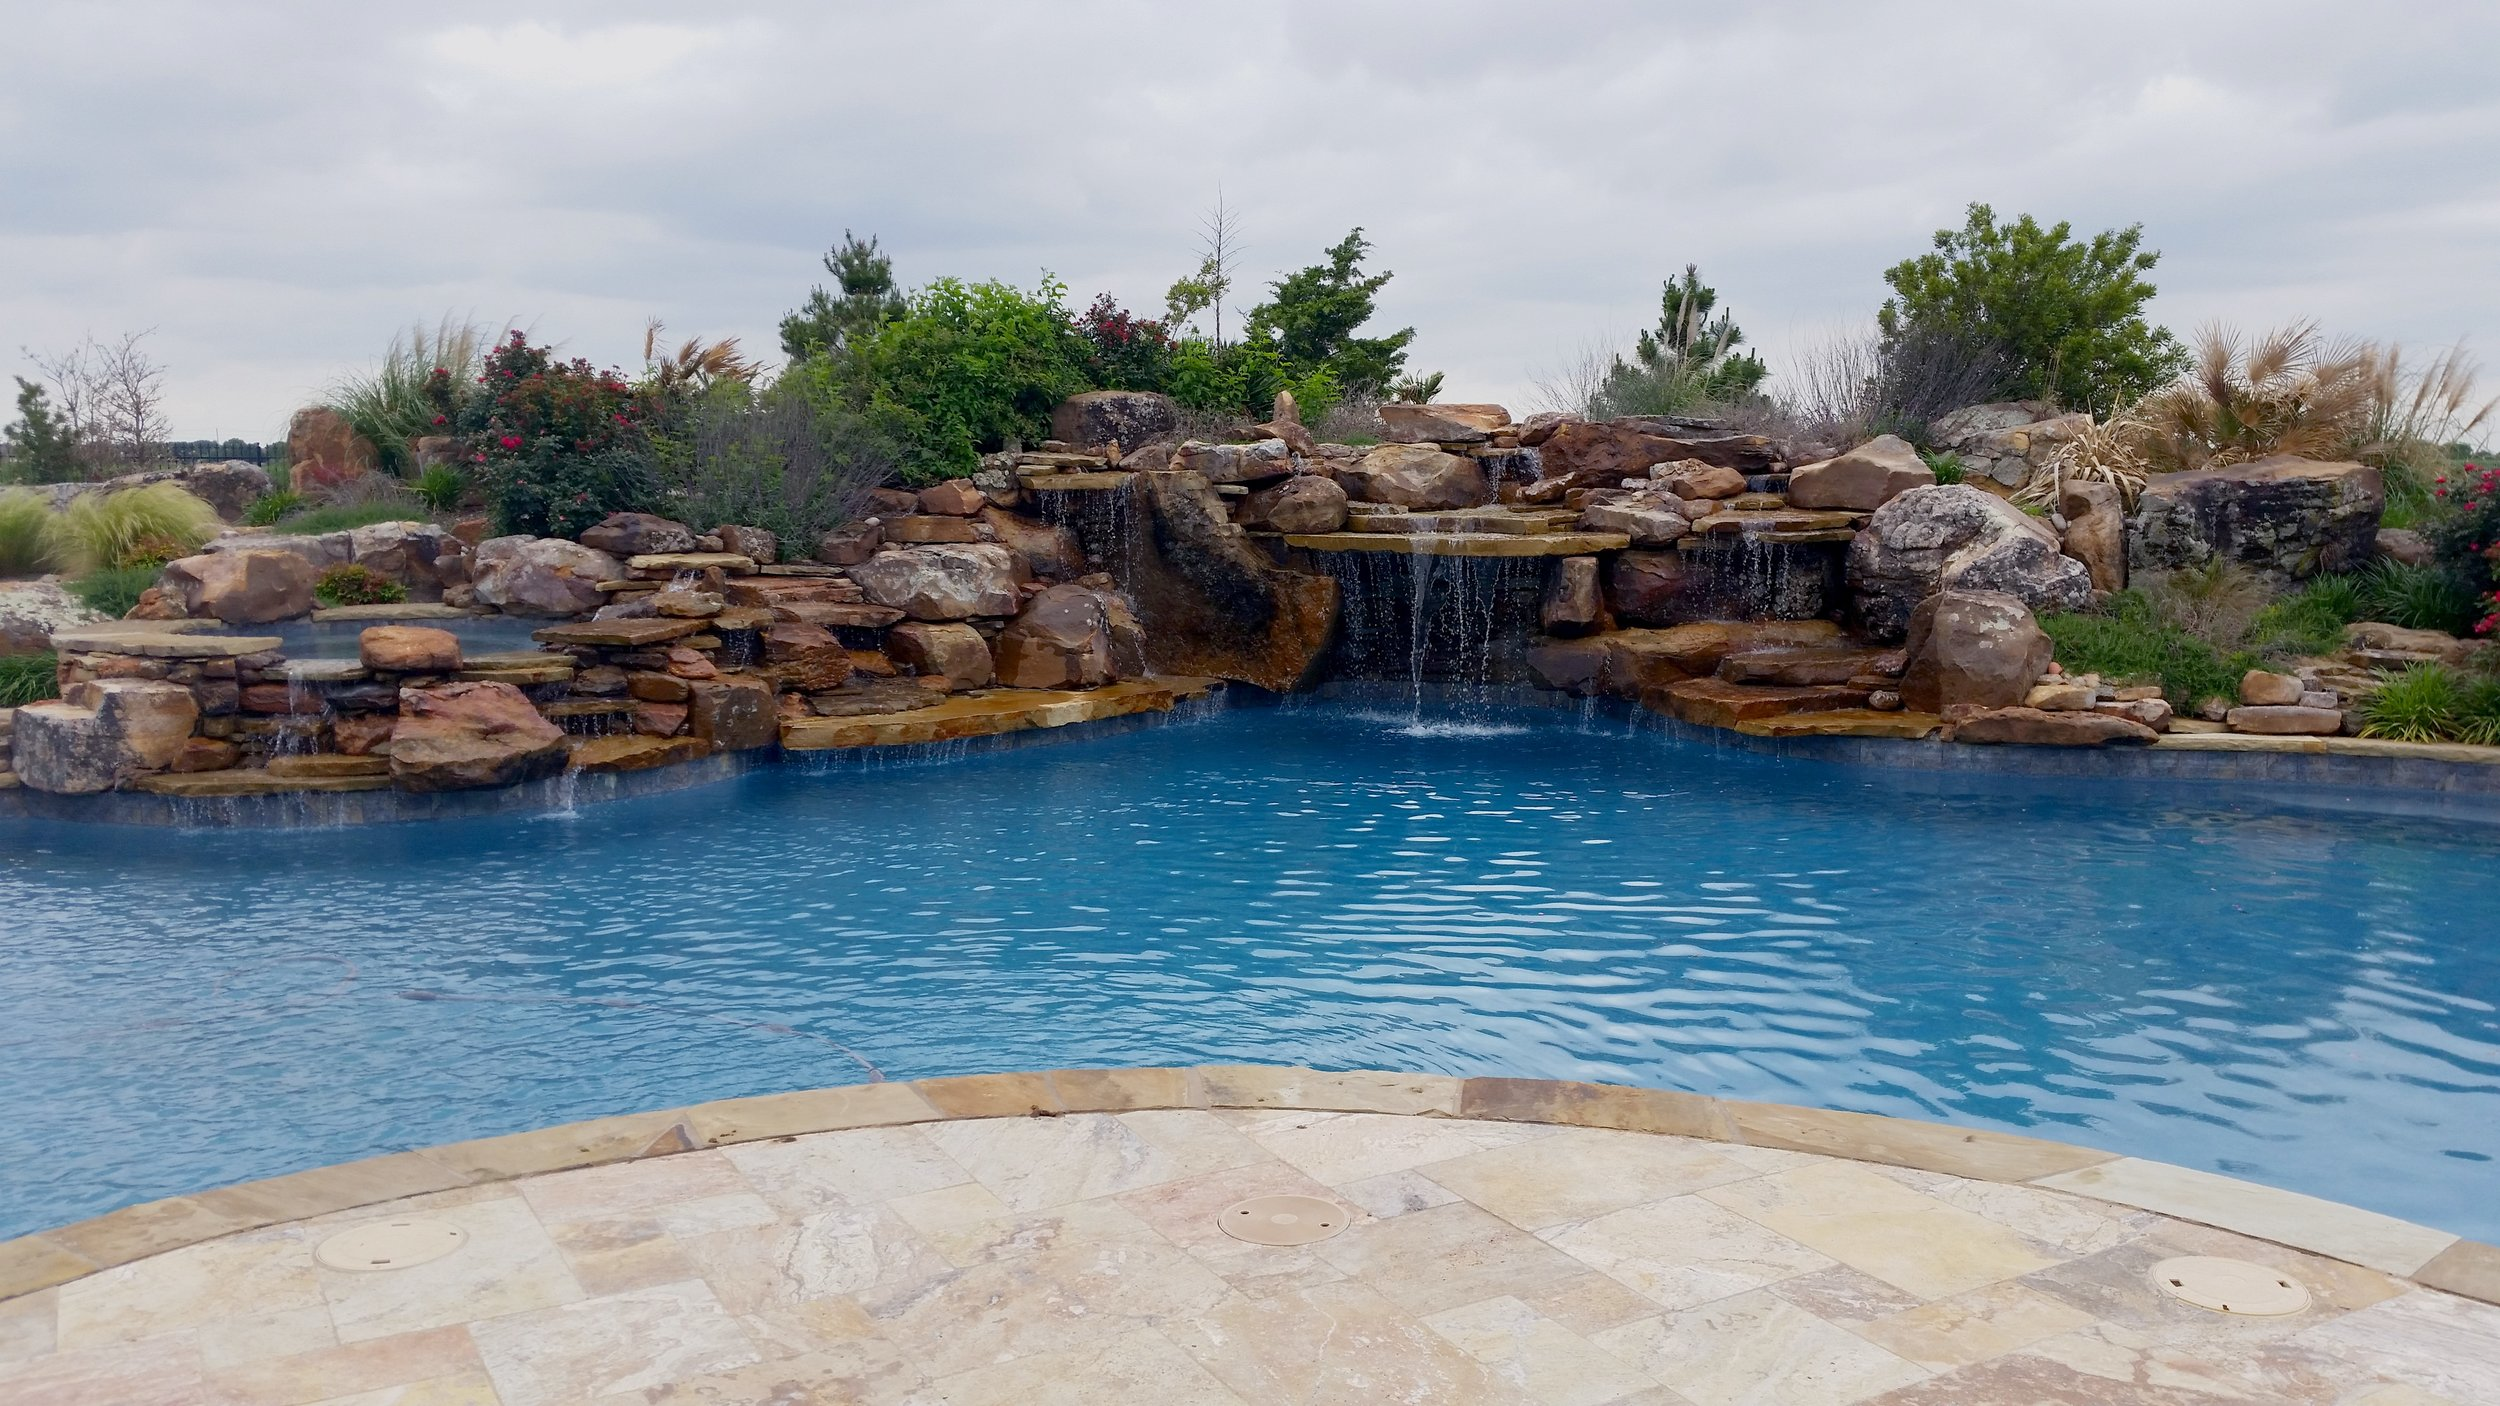 Dionne+Face+View+Adjusted